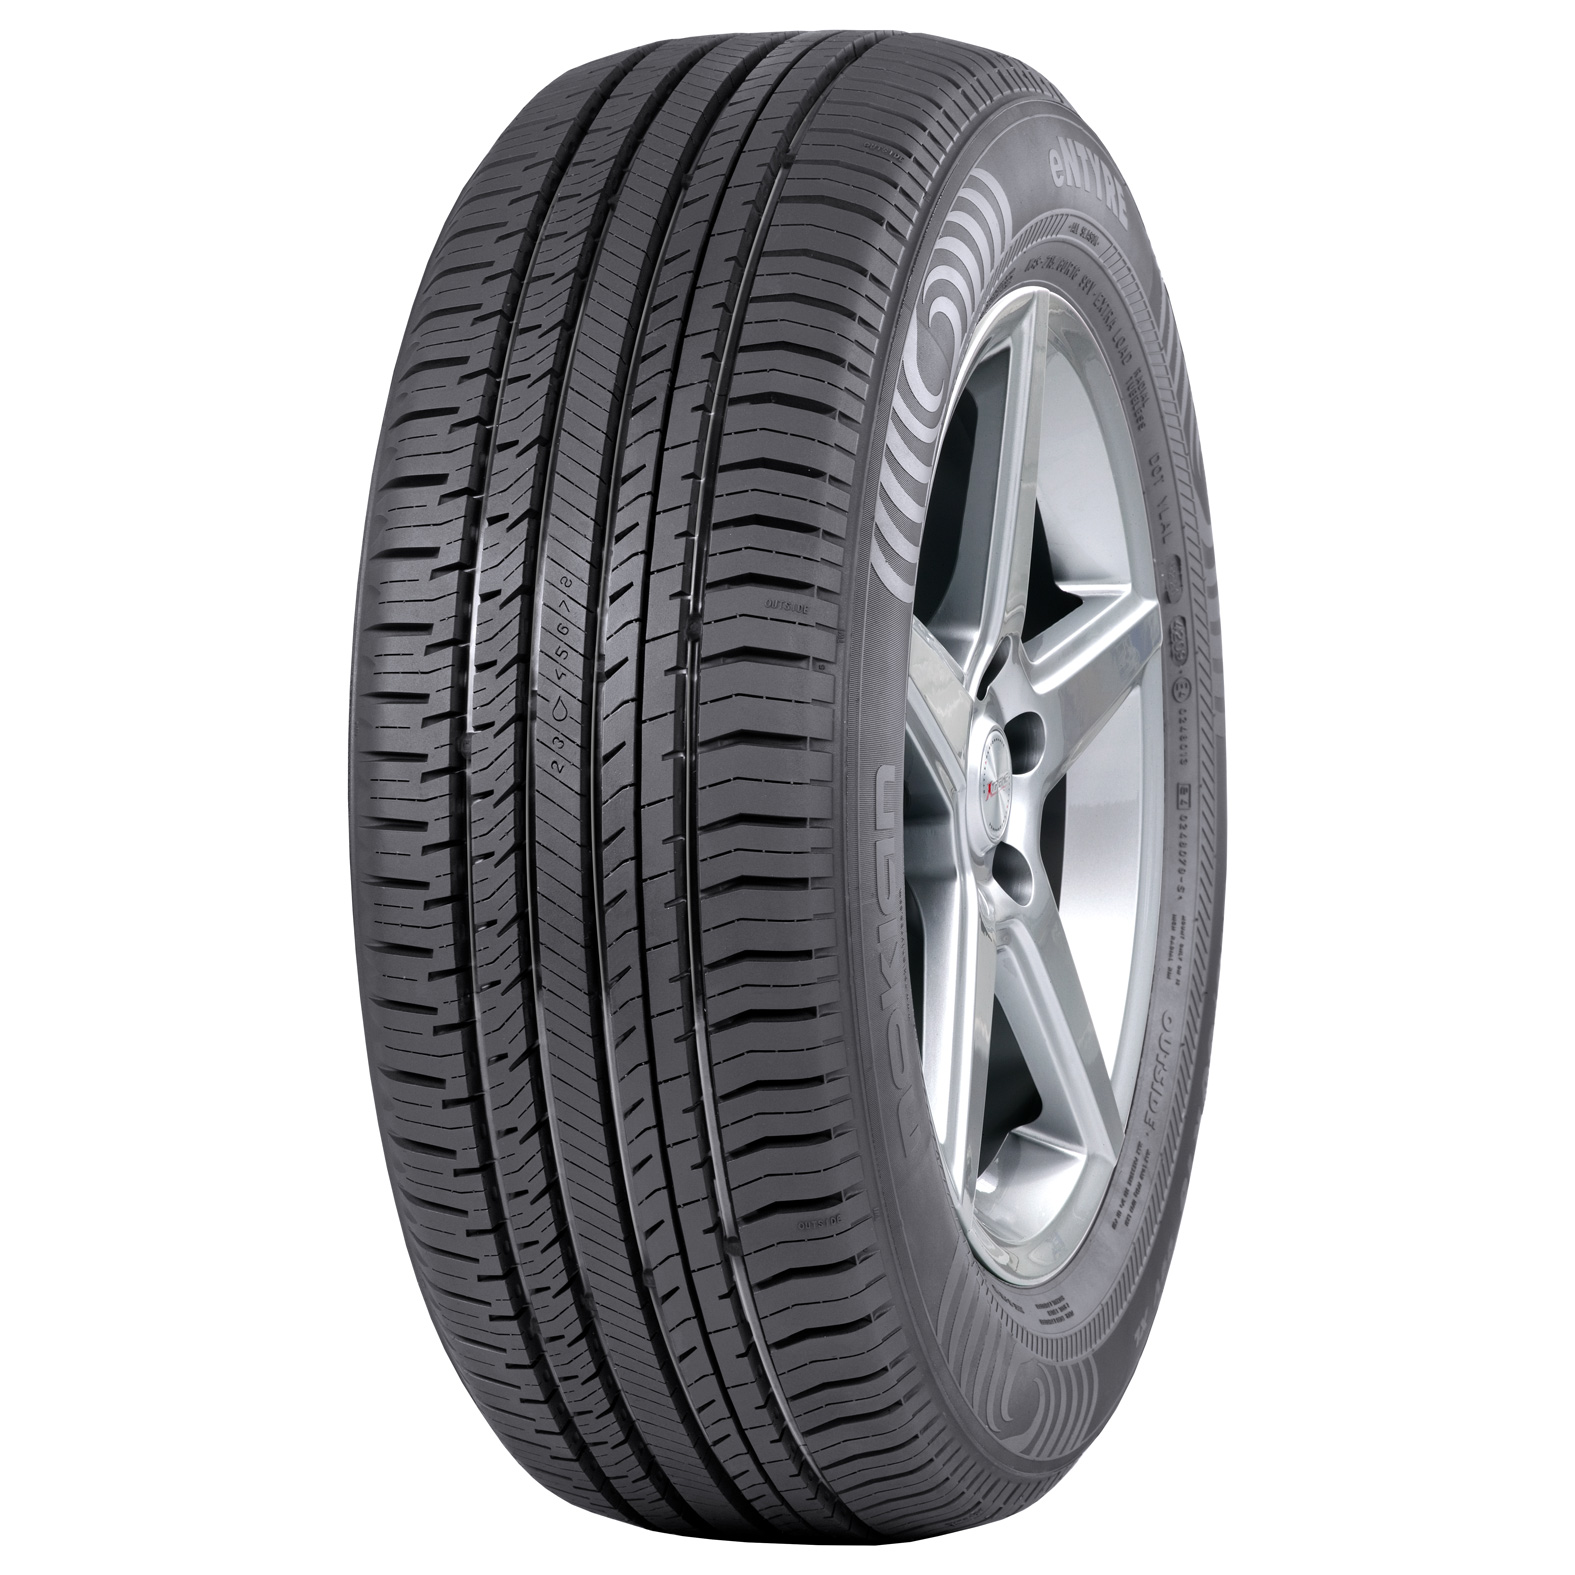 Nokian Tyres entyre tire - angle